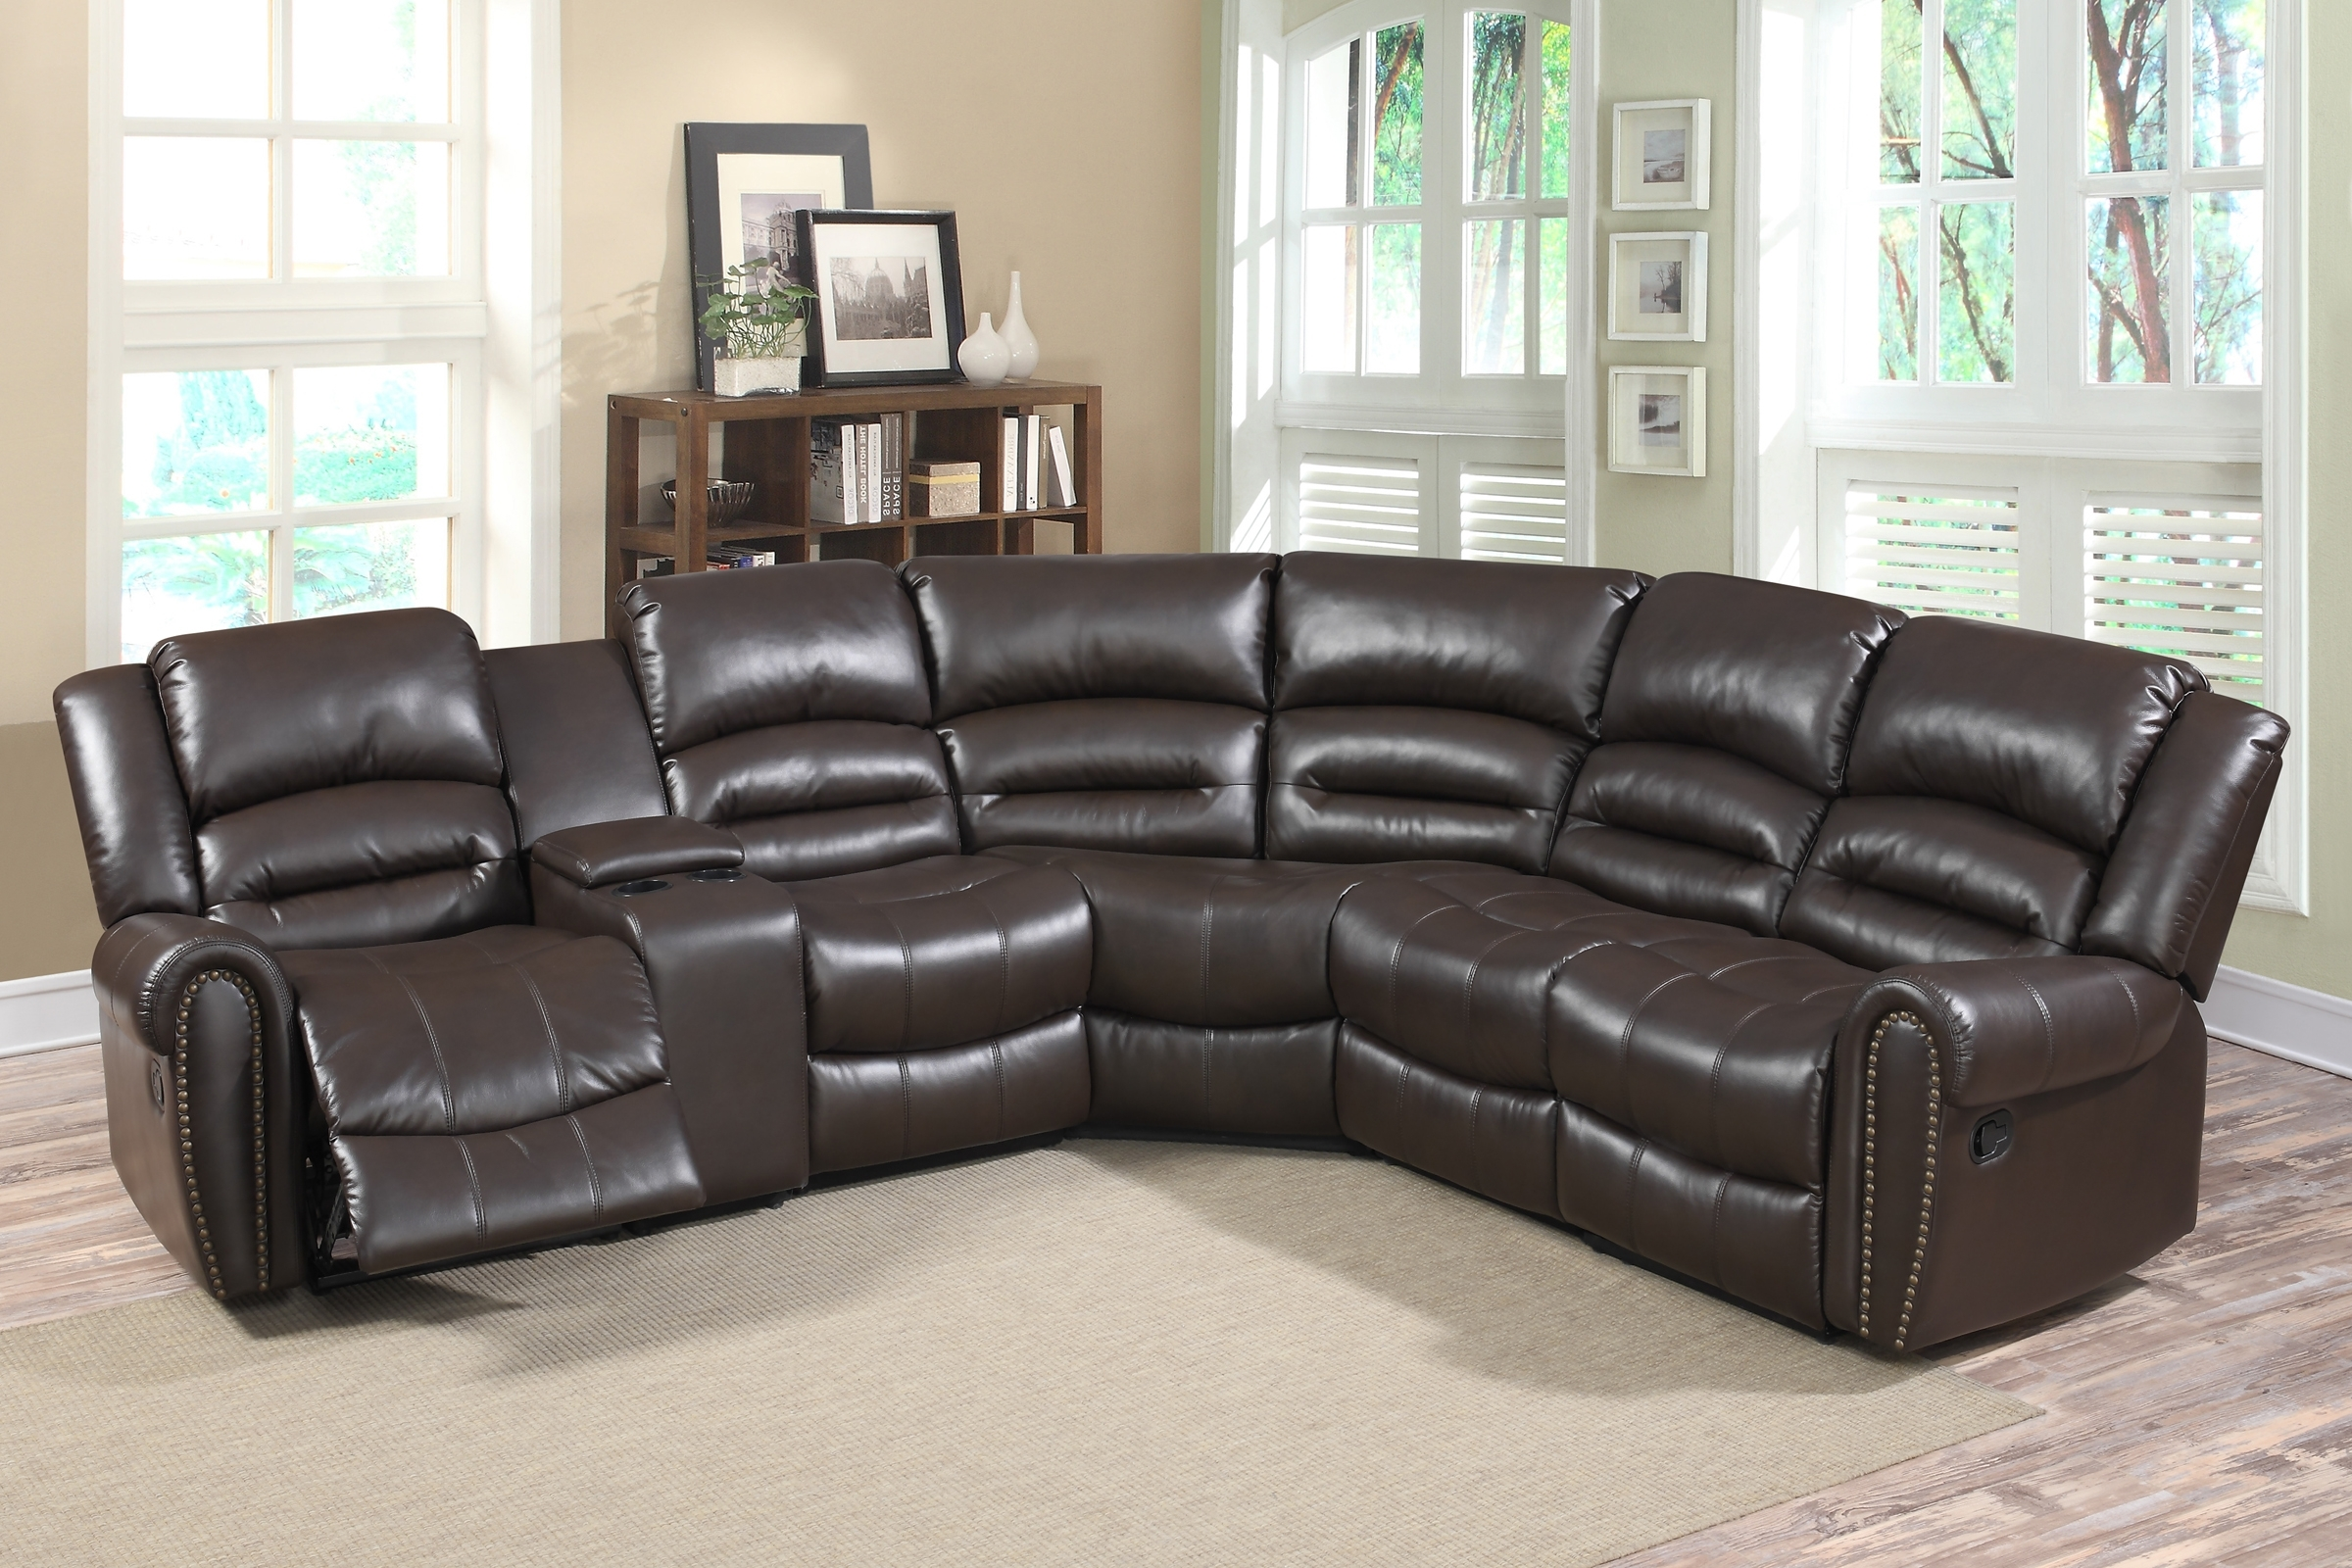 Sectional Sofa : Custom Sectional U Shaped Sectional Large Sectional for Reclining U Shaped Sectionals (Image 10 of 15)